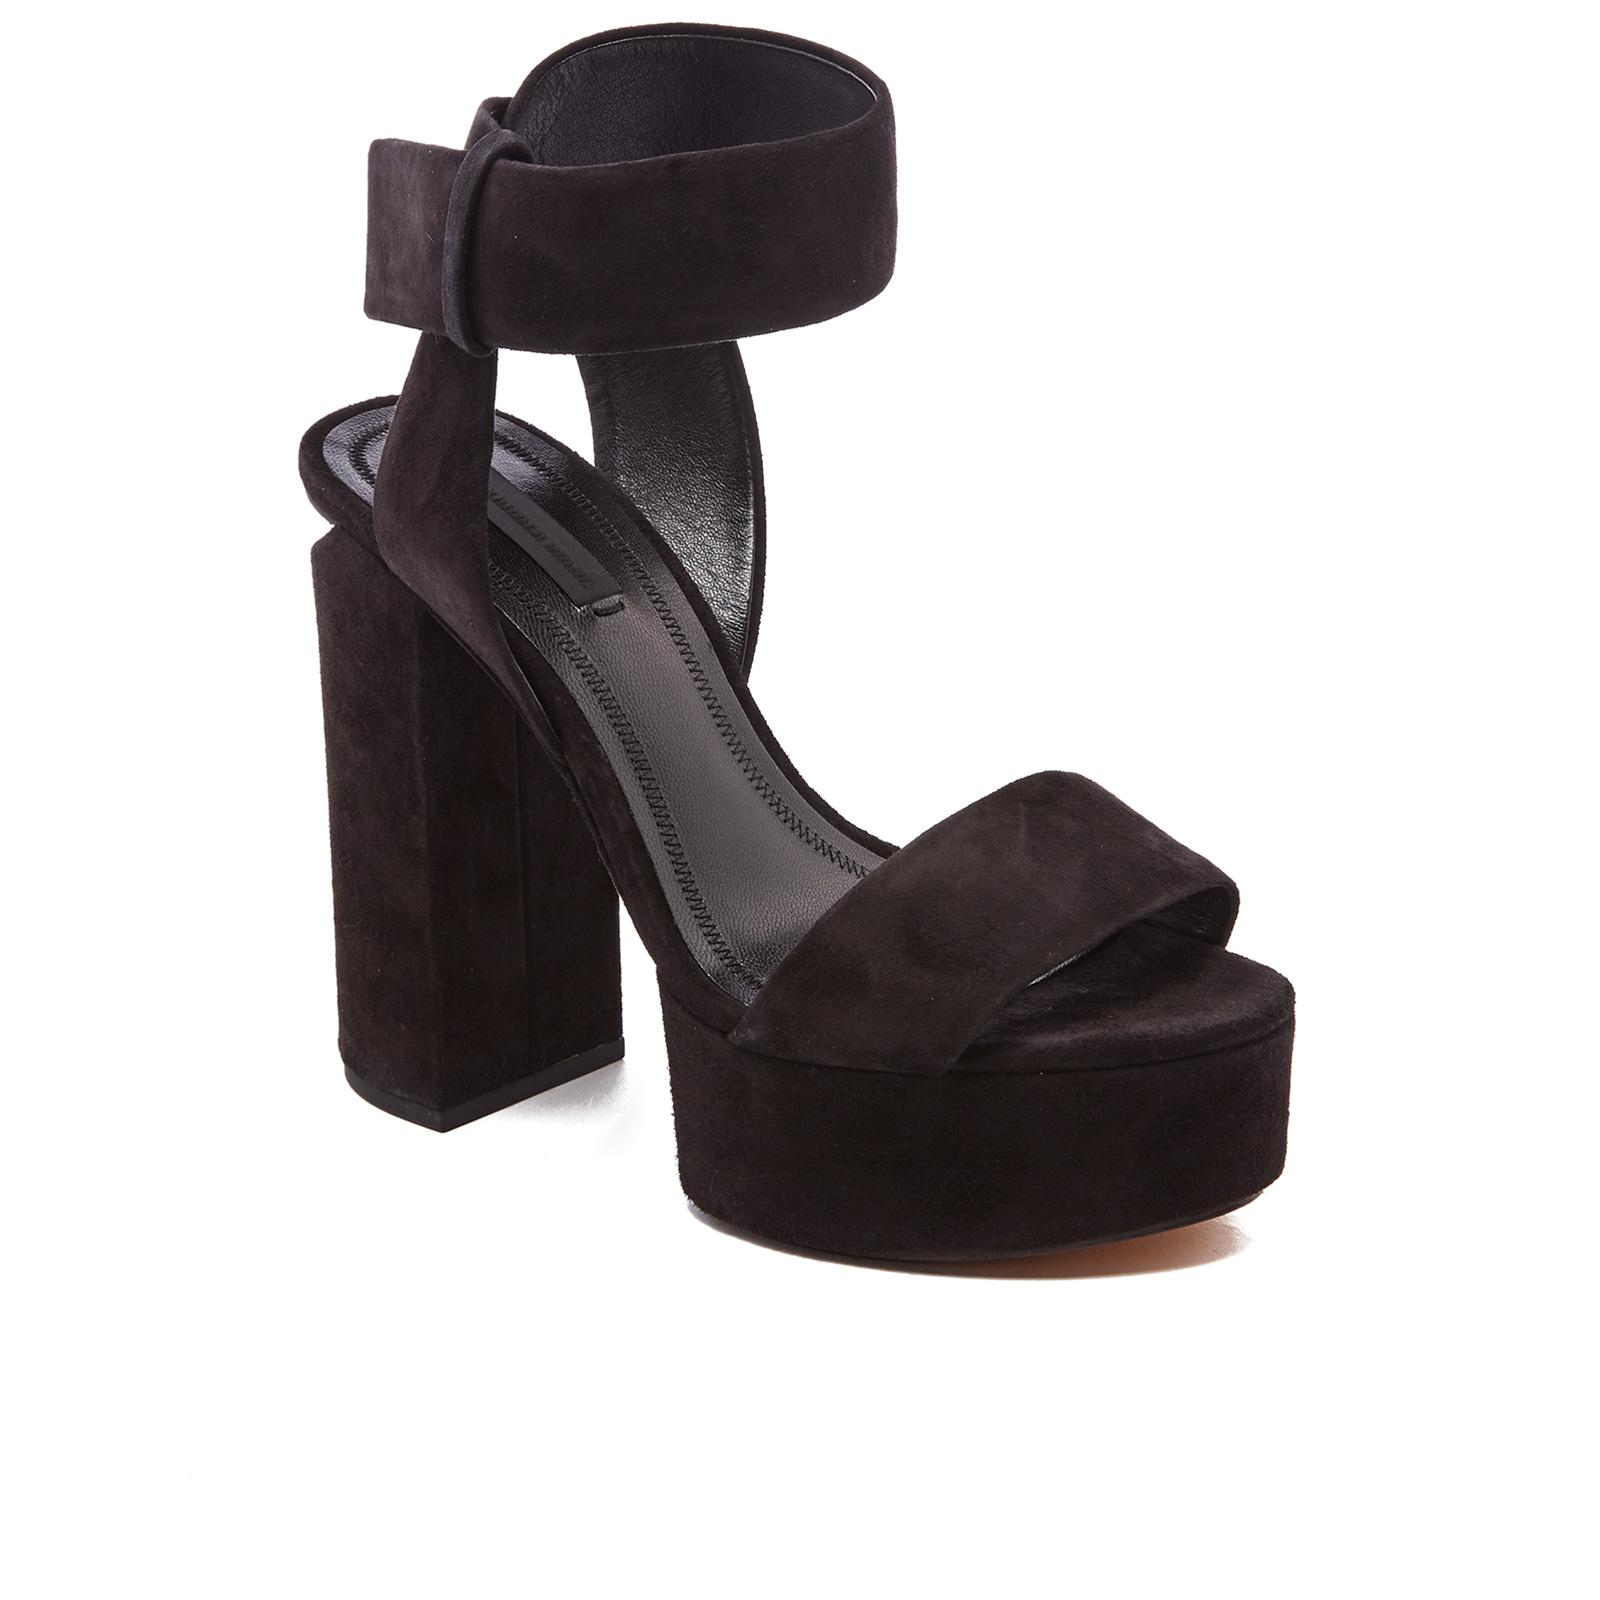 4c454e28675e Alexander Wang - Black Keke Platform Heeled Sandals - Lyst. View fullscreen